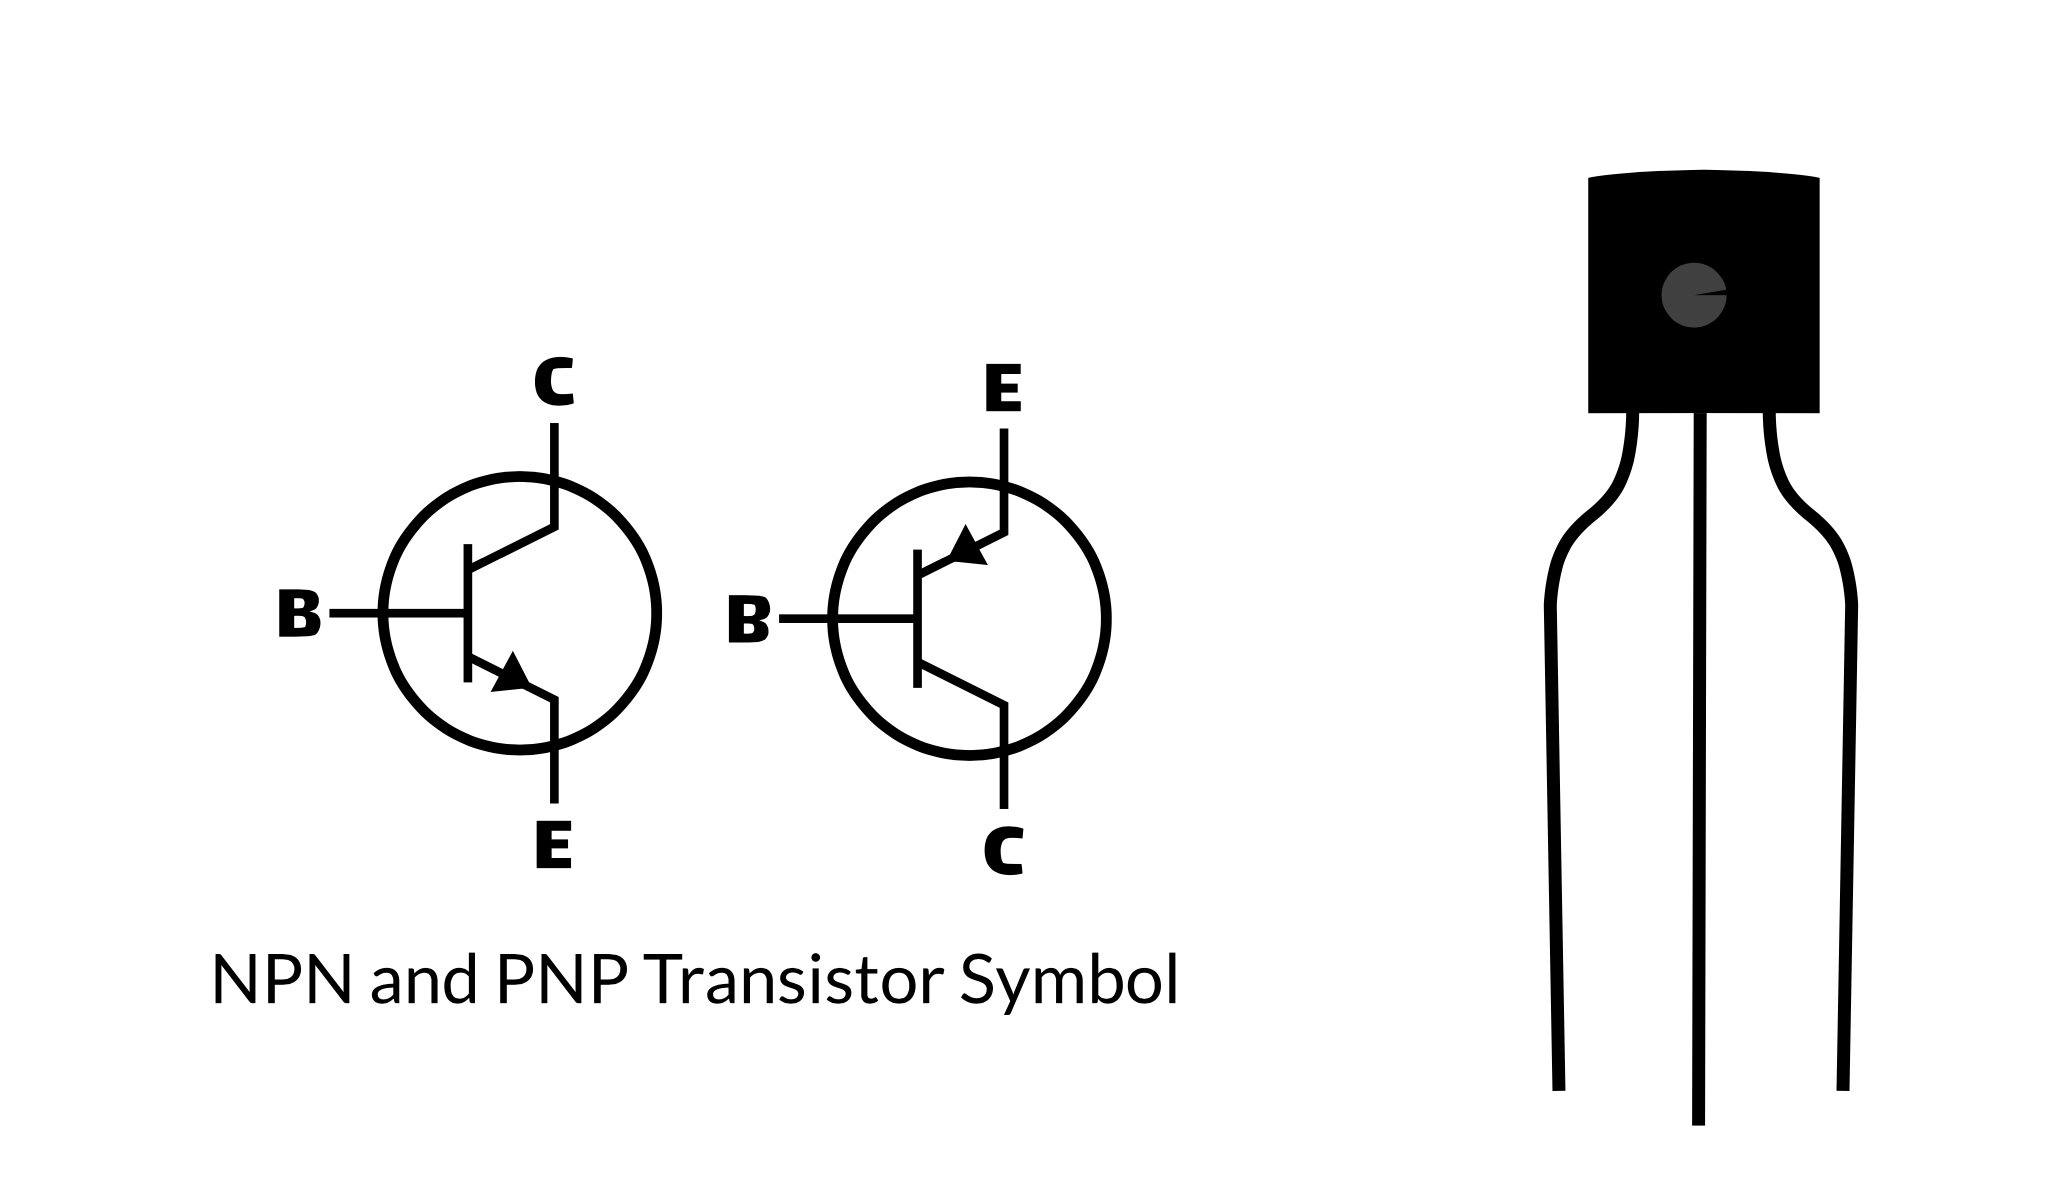 Transistor vector part of electrical component icons. This transistor icon including type of transistor scheme electric. Lose transistor ready for electric soldering equipment chip.